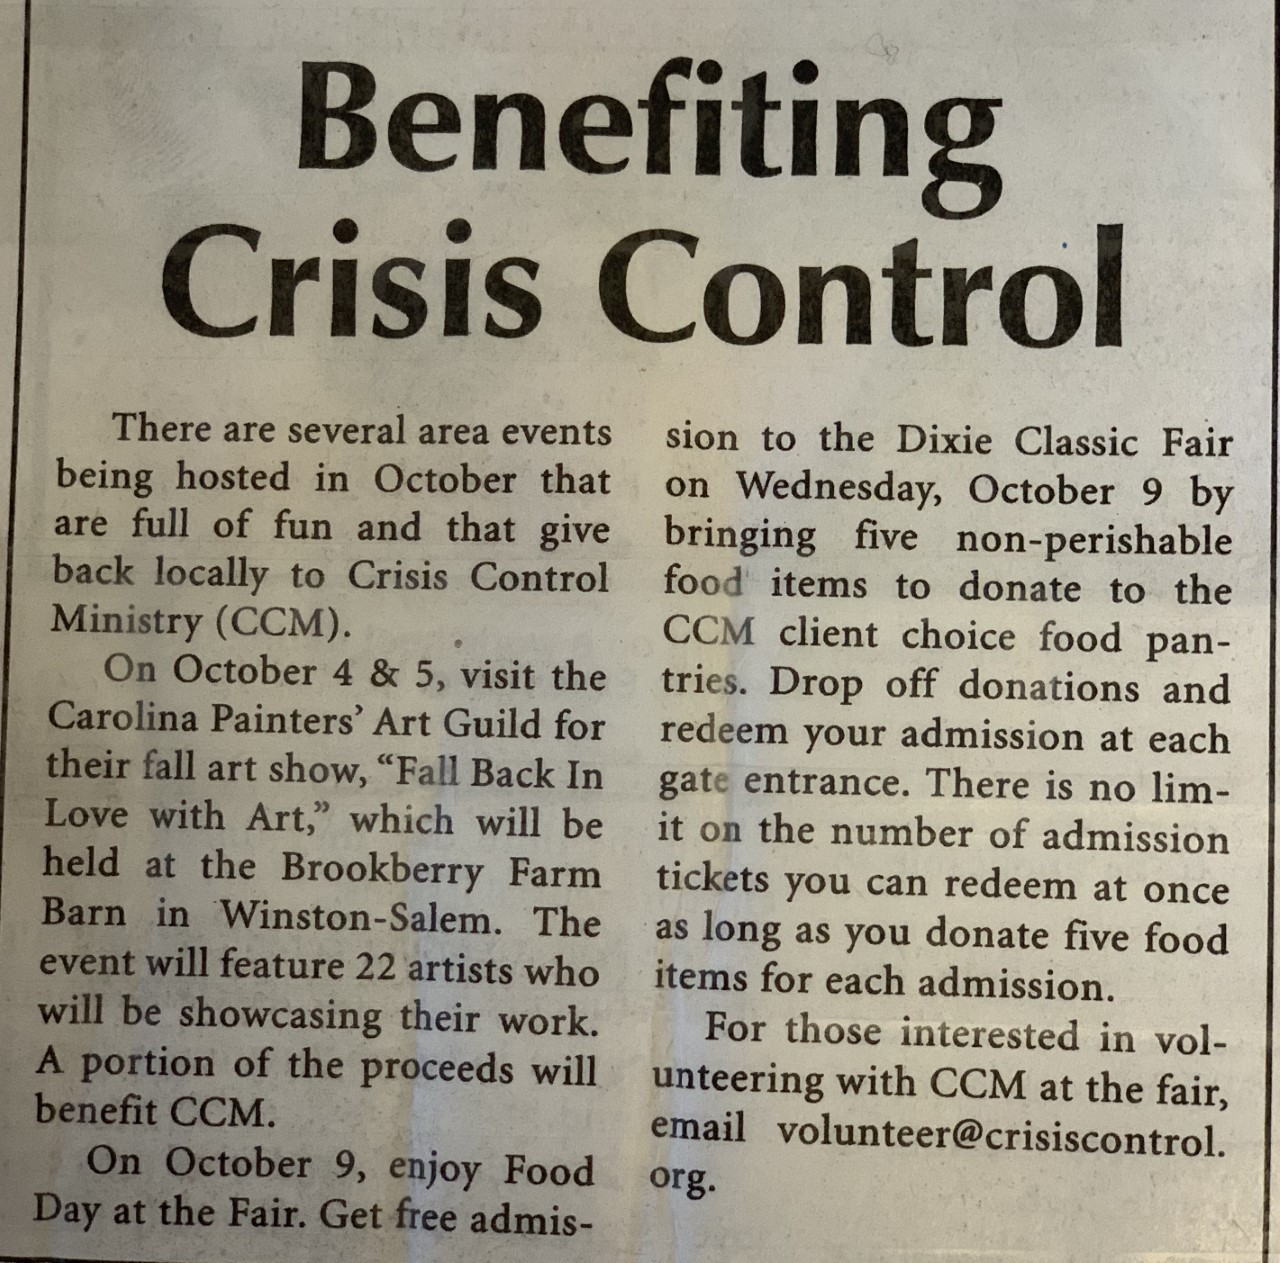 Kernersville News: Benefiting Crisis Control